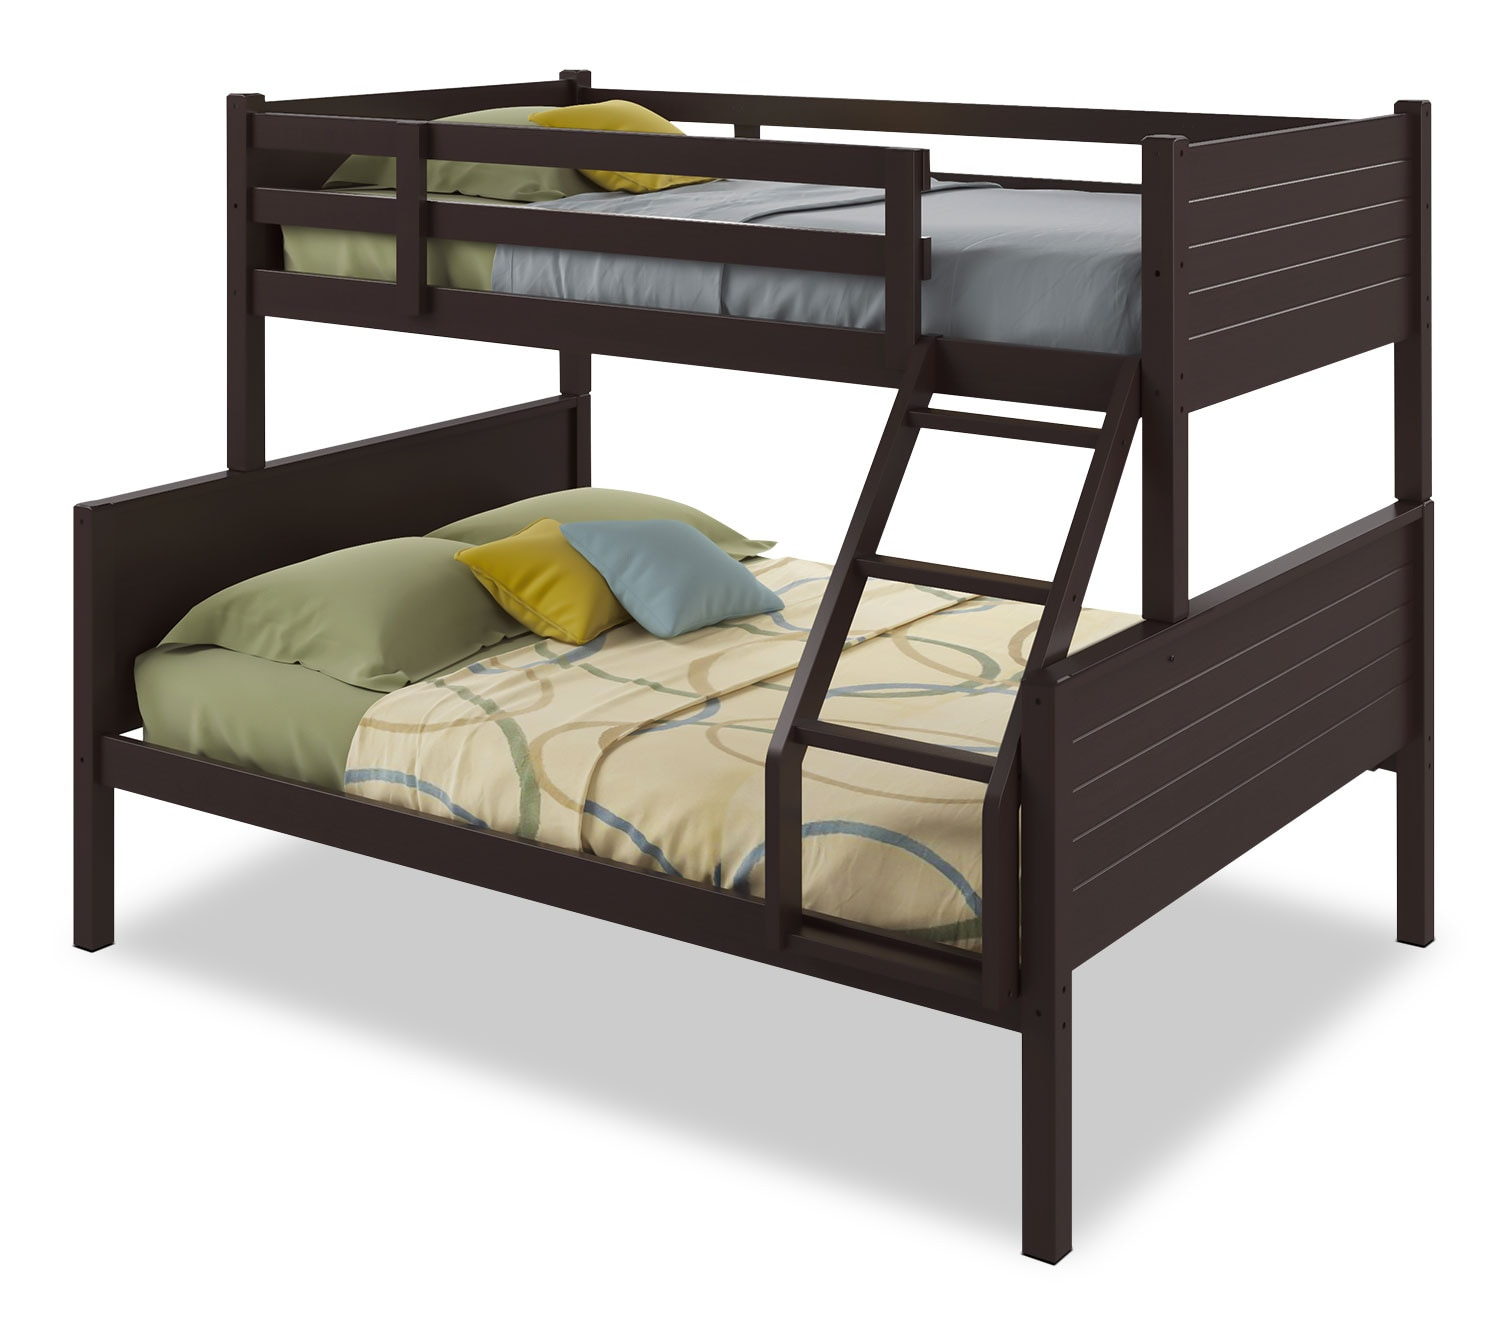 CorLiving Twin/Full Bunk Bed with Panel Headboards – Dark Cappuccino